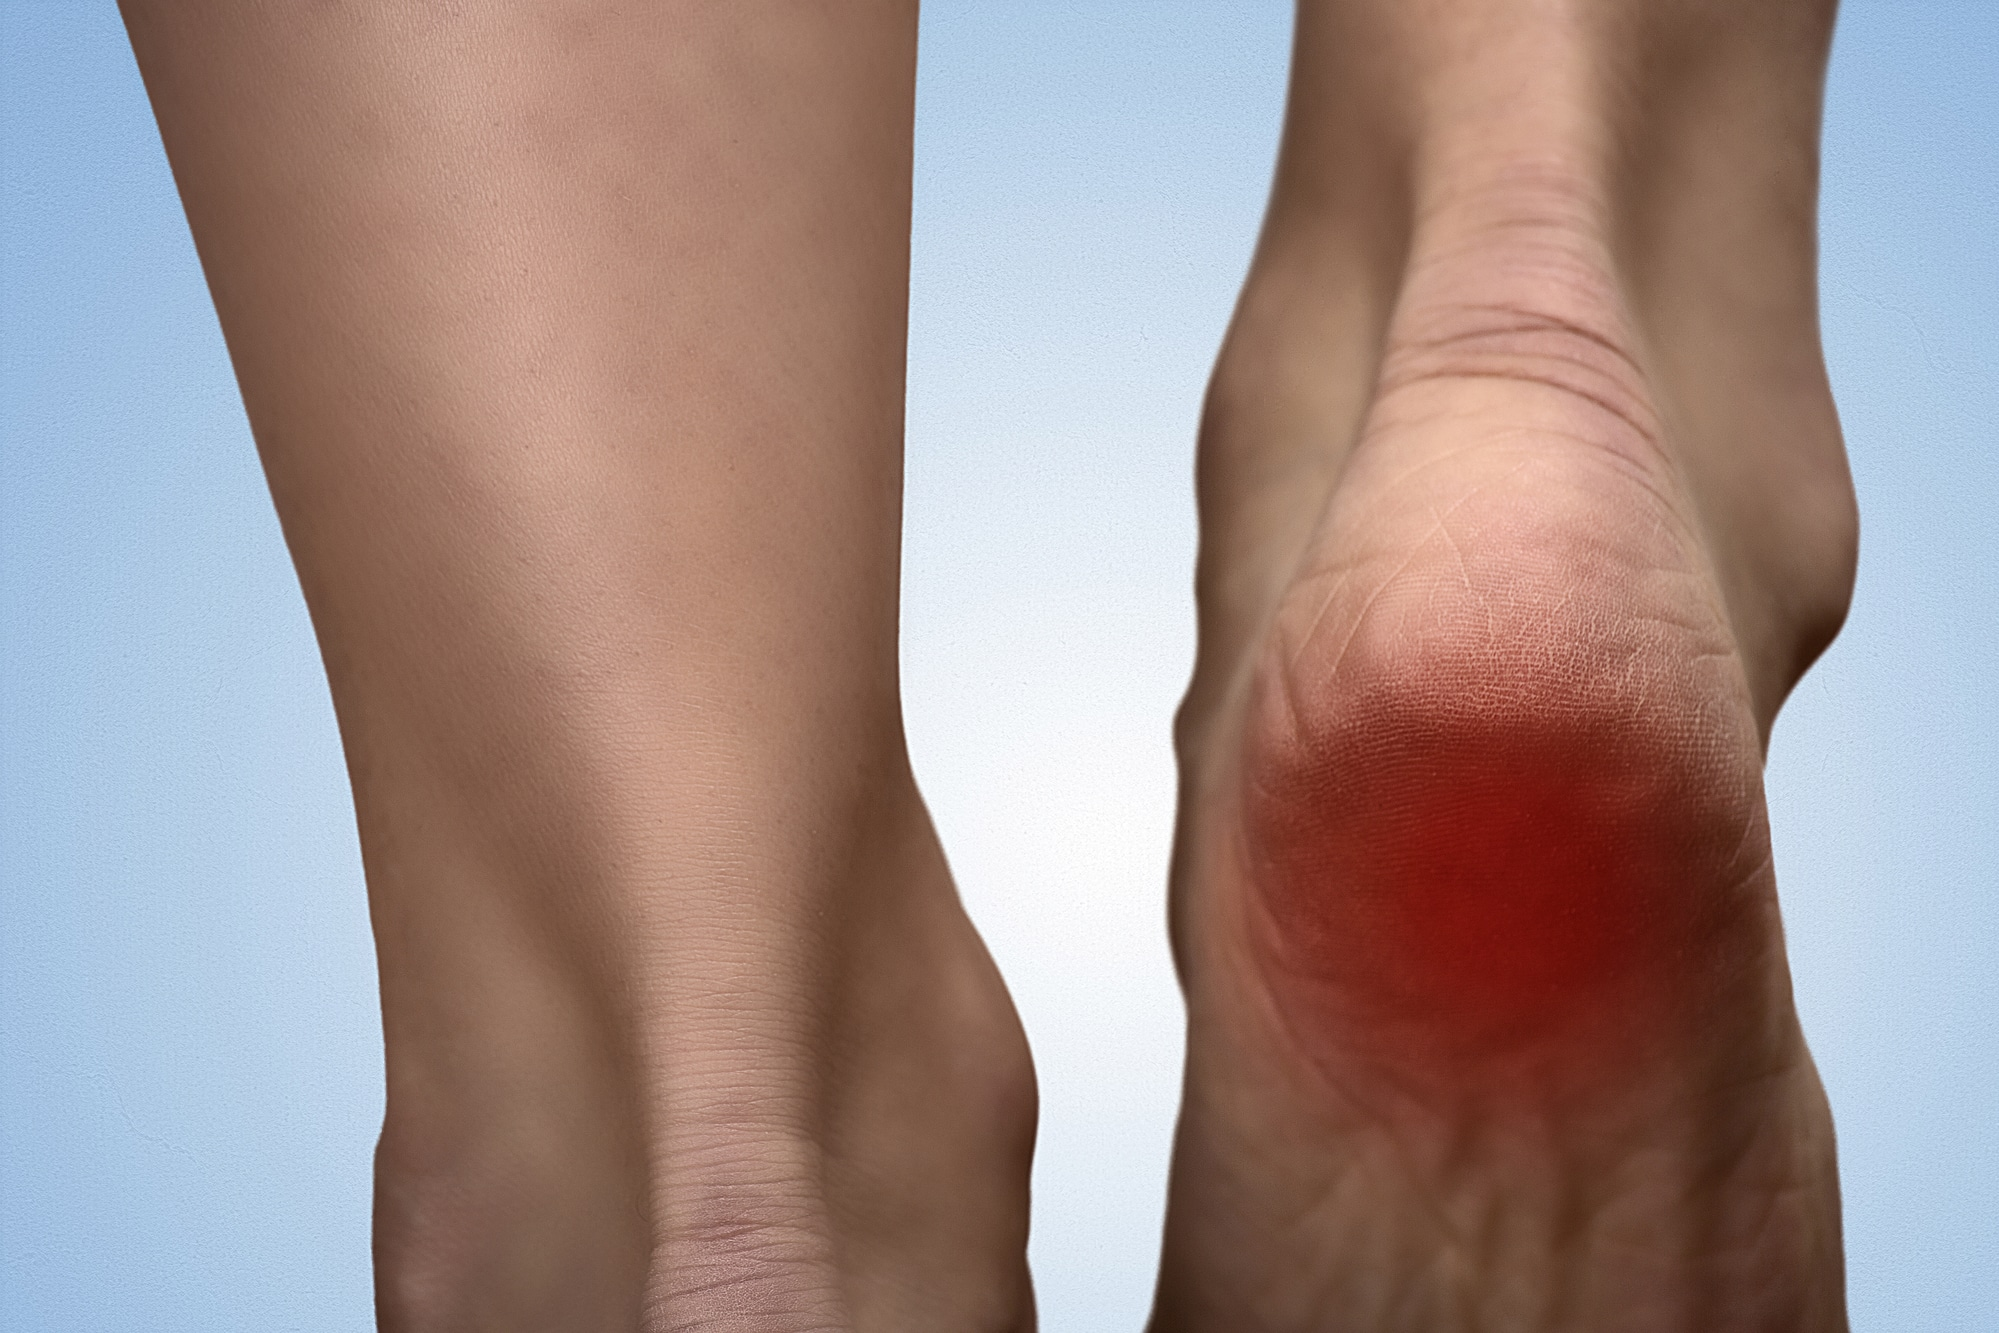 Painful heel with red spot on woman's foot. Arthritis. Tarsal tunnel syndrome concept. Heel pain in women. Pain concept